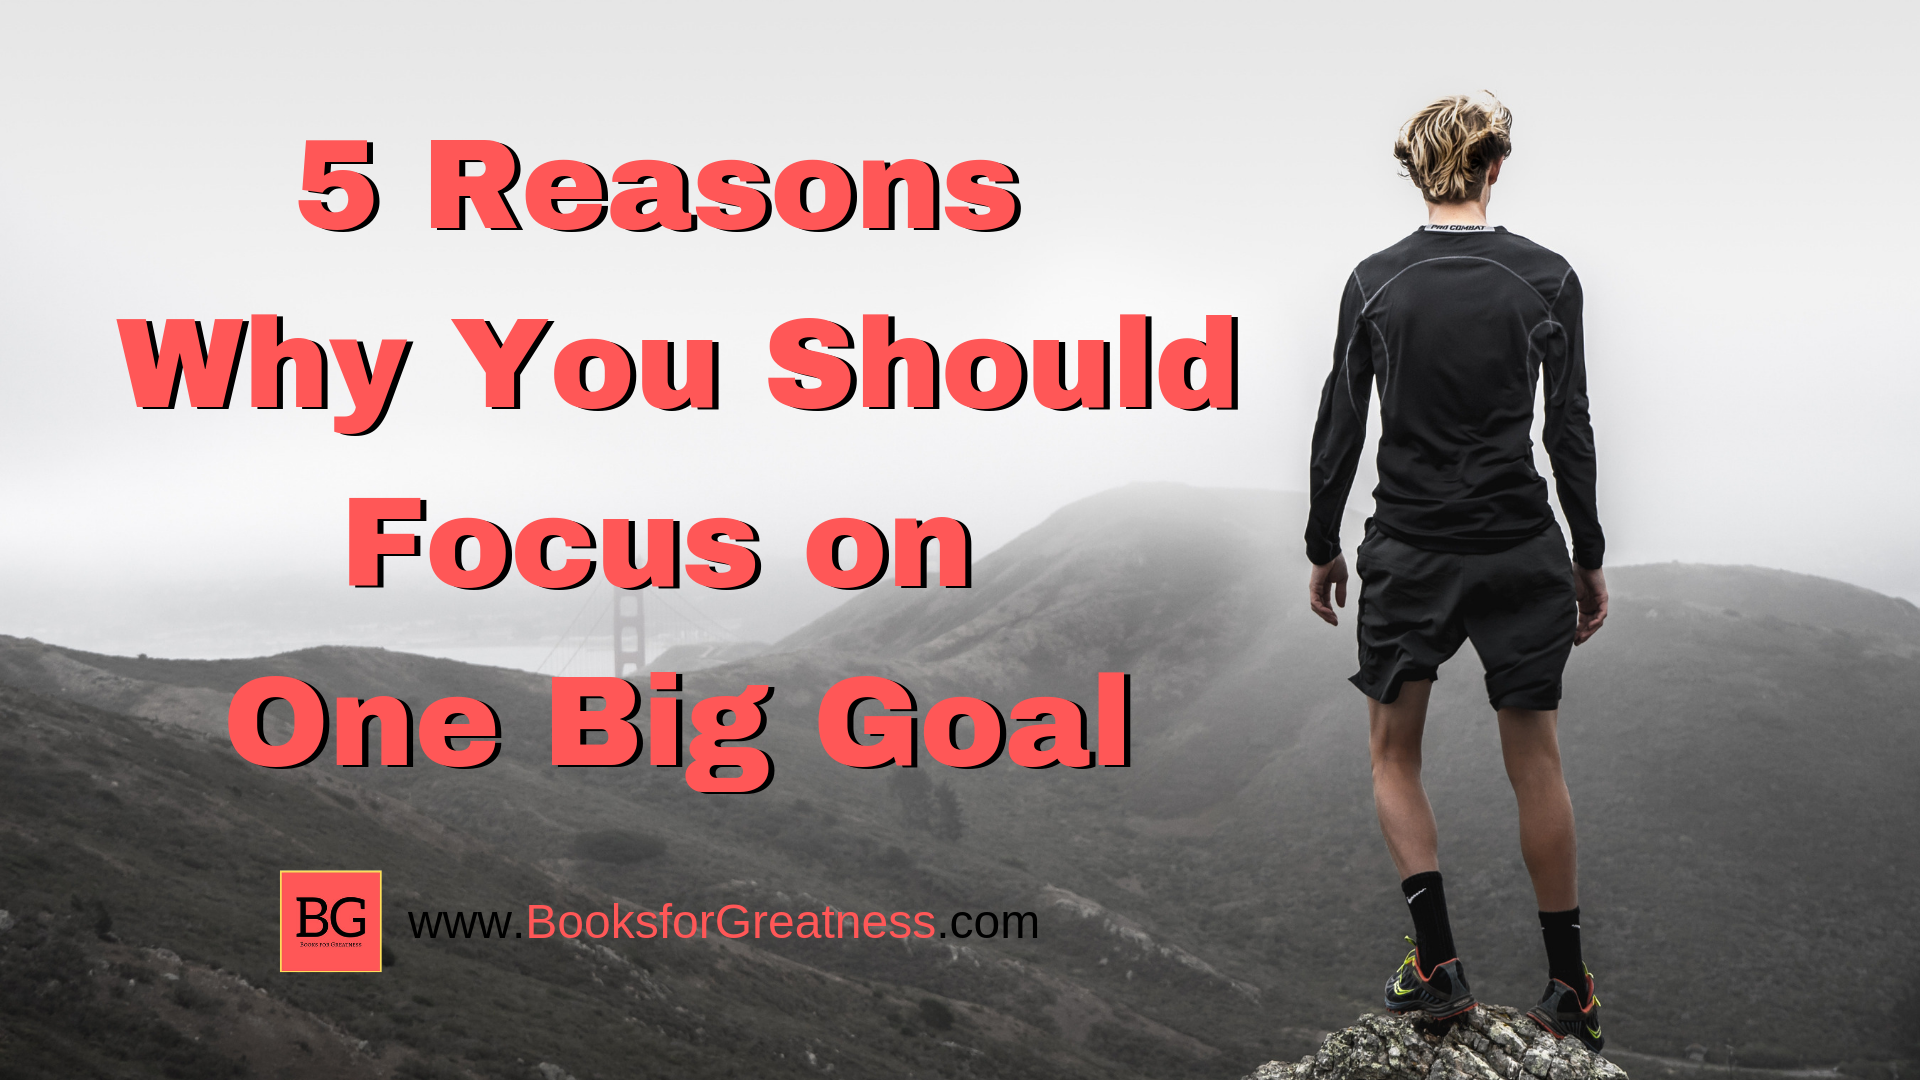 5 Reasons Why You Should Focus on One Big Goal